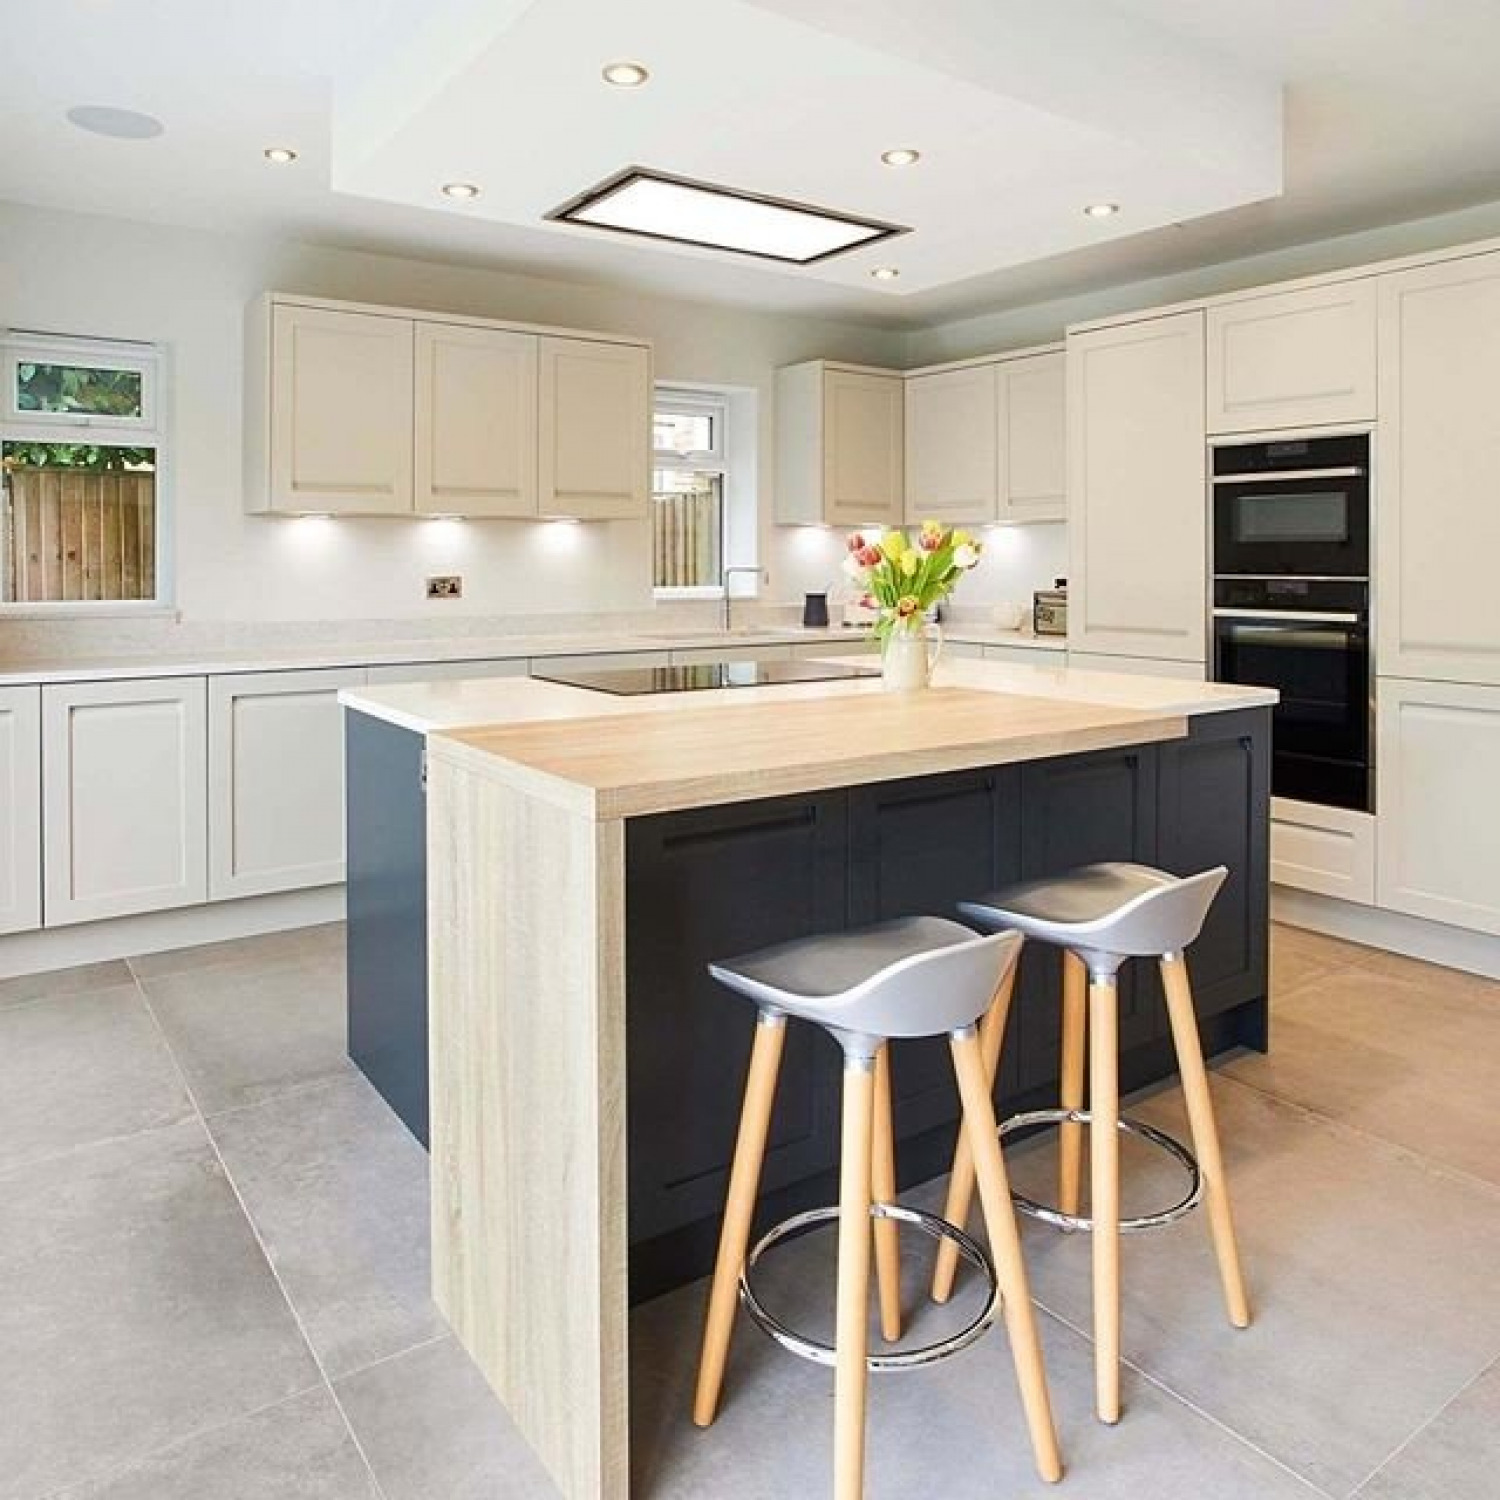 Solid Wood Countertops How To Clean